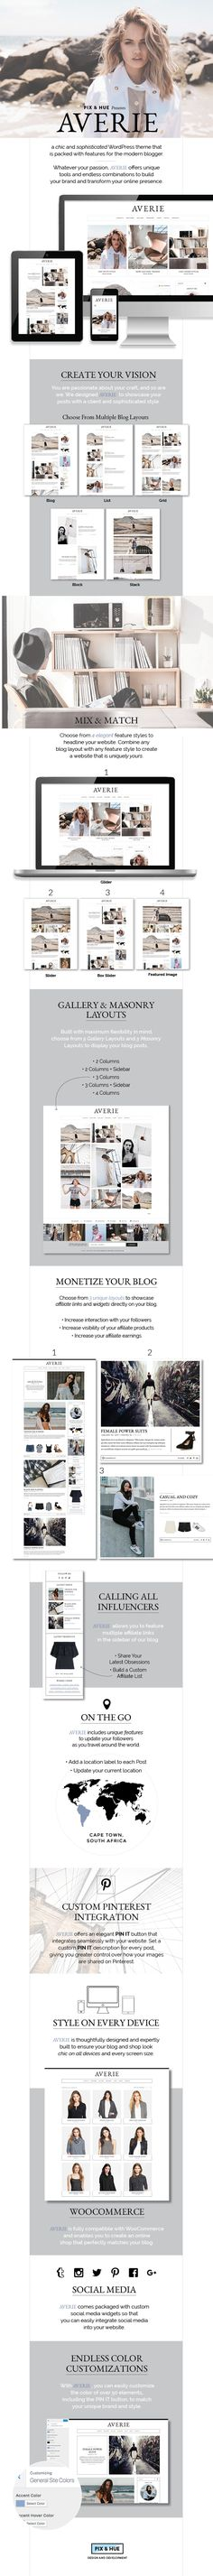 Averie - A Blog & Shop Theme by pixandhue | ThemeForest #ad